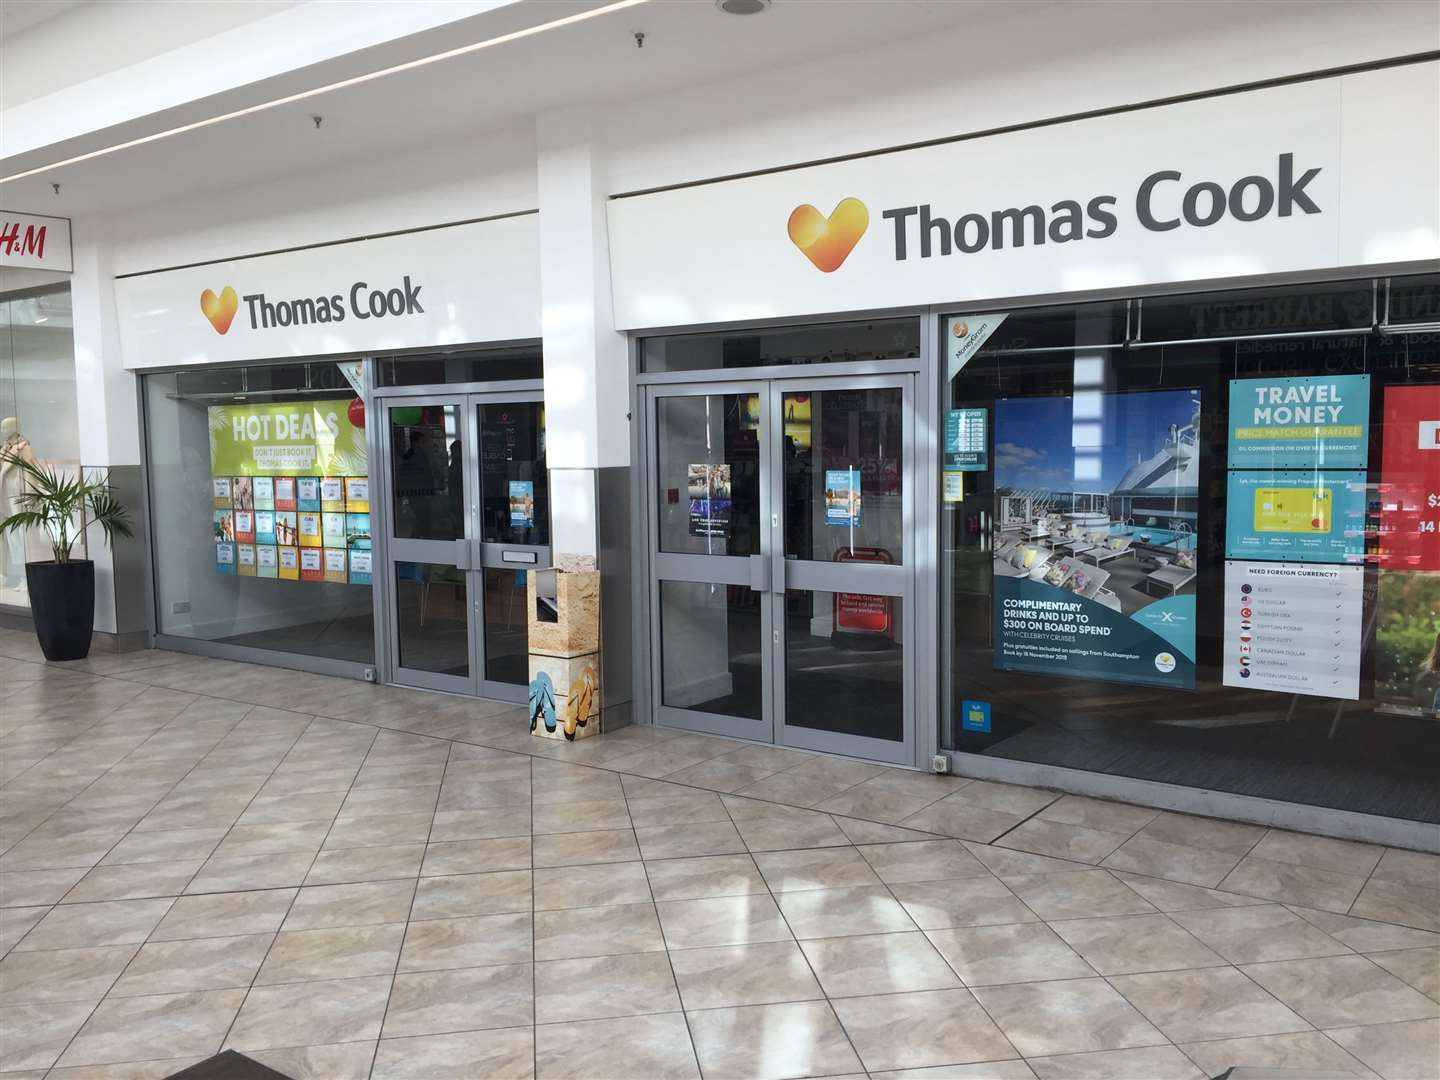 Hundreds of Thomas Cook jobs still under threat despite rescue deal